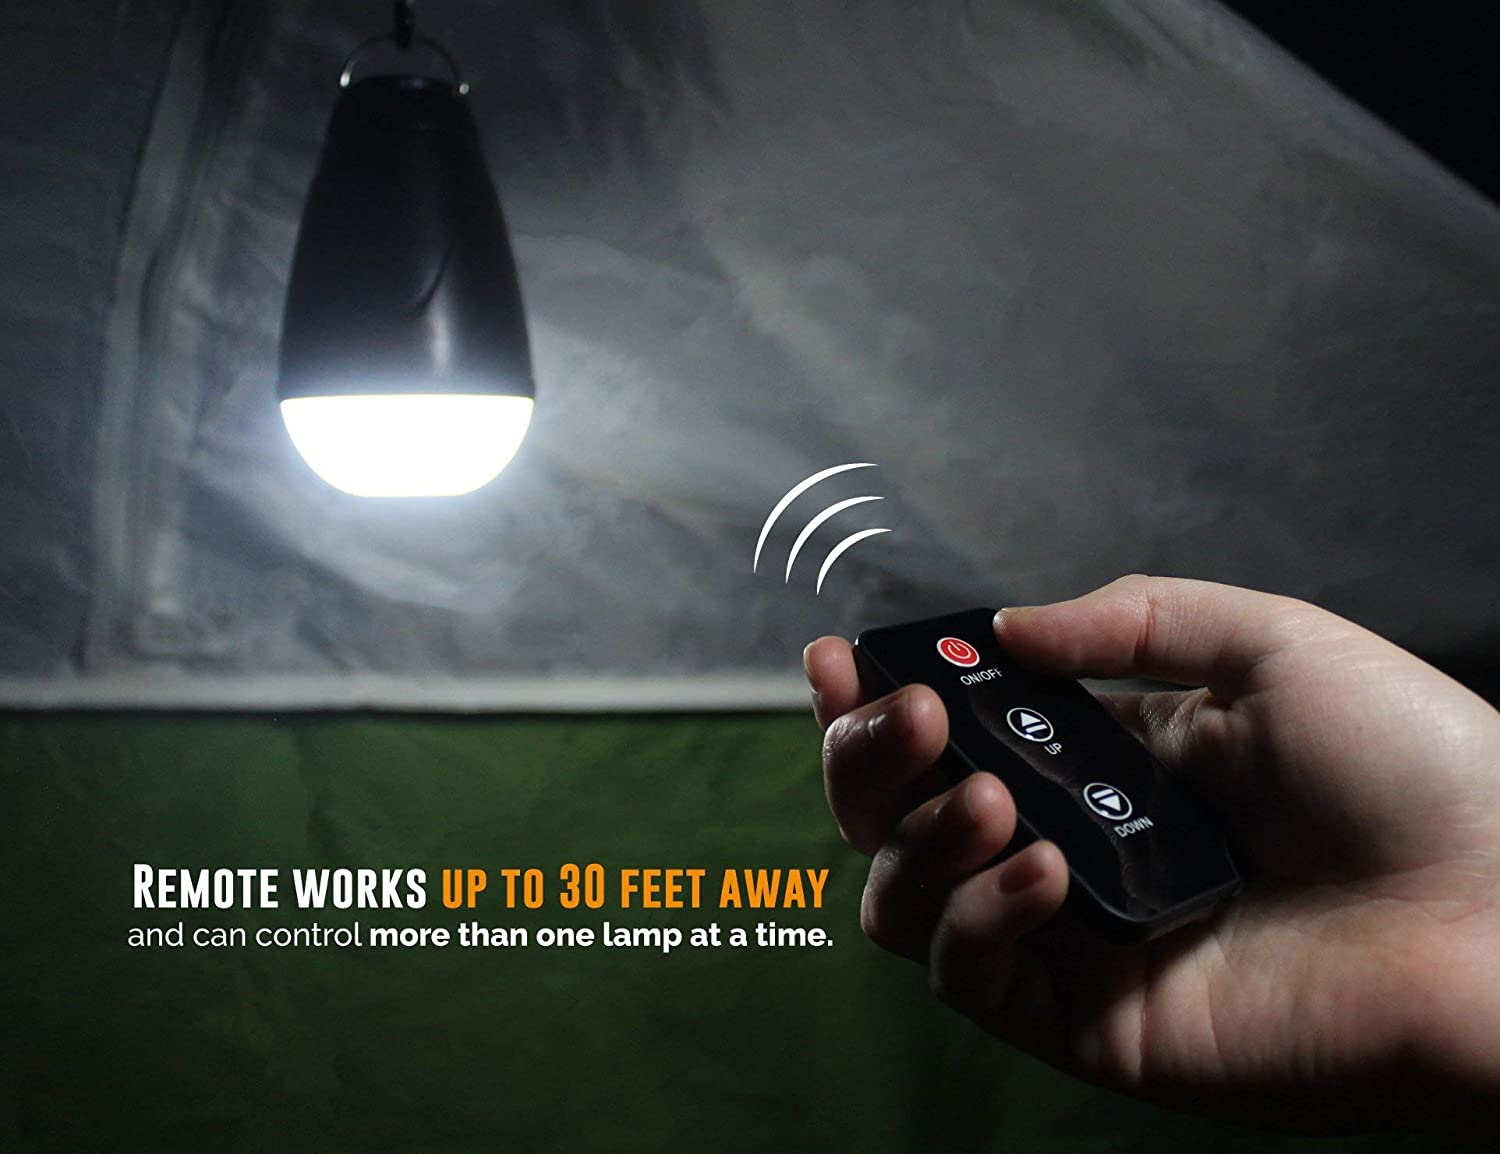 Best Camping Lights For Lighting Your Campsite Led Solar String Pull Chain Light Fixtures Are Easy To Replace When The Switch Wears With Remote Control